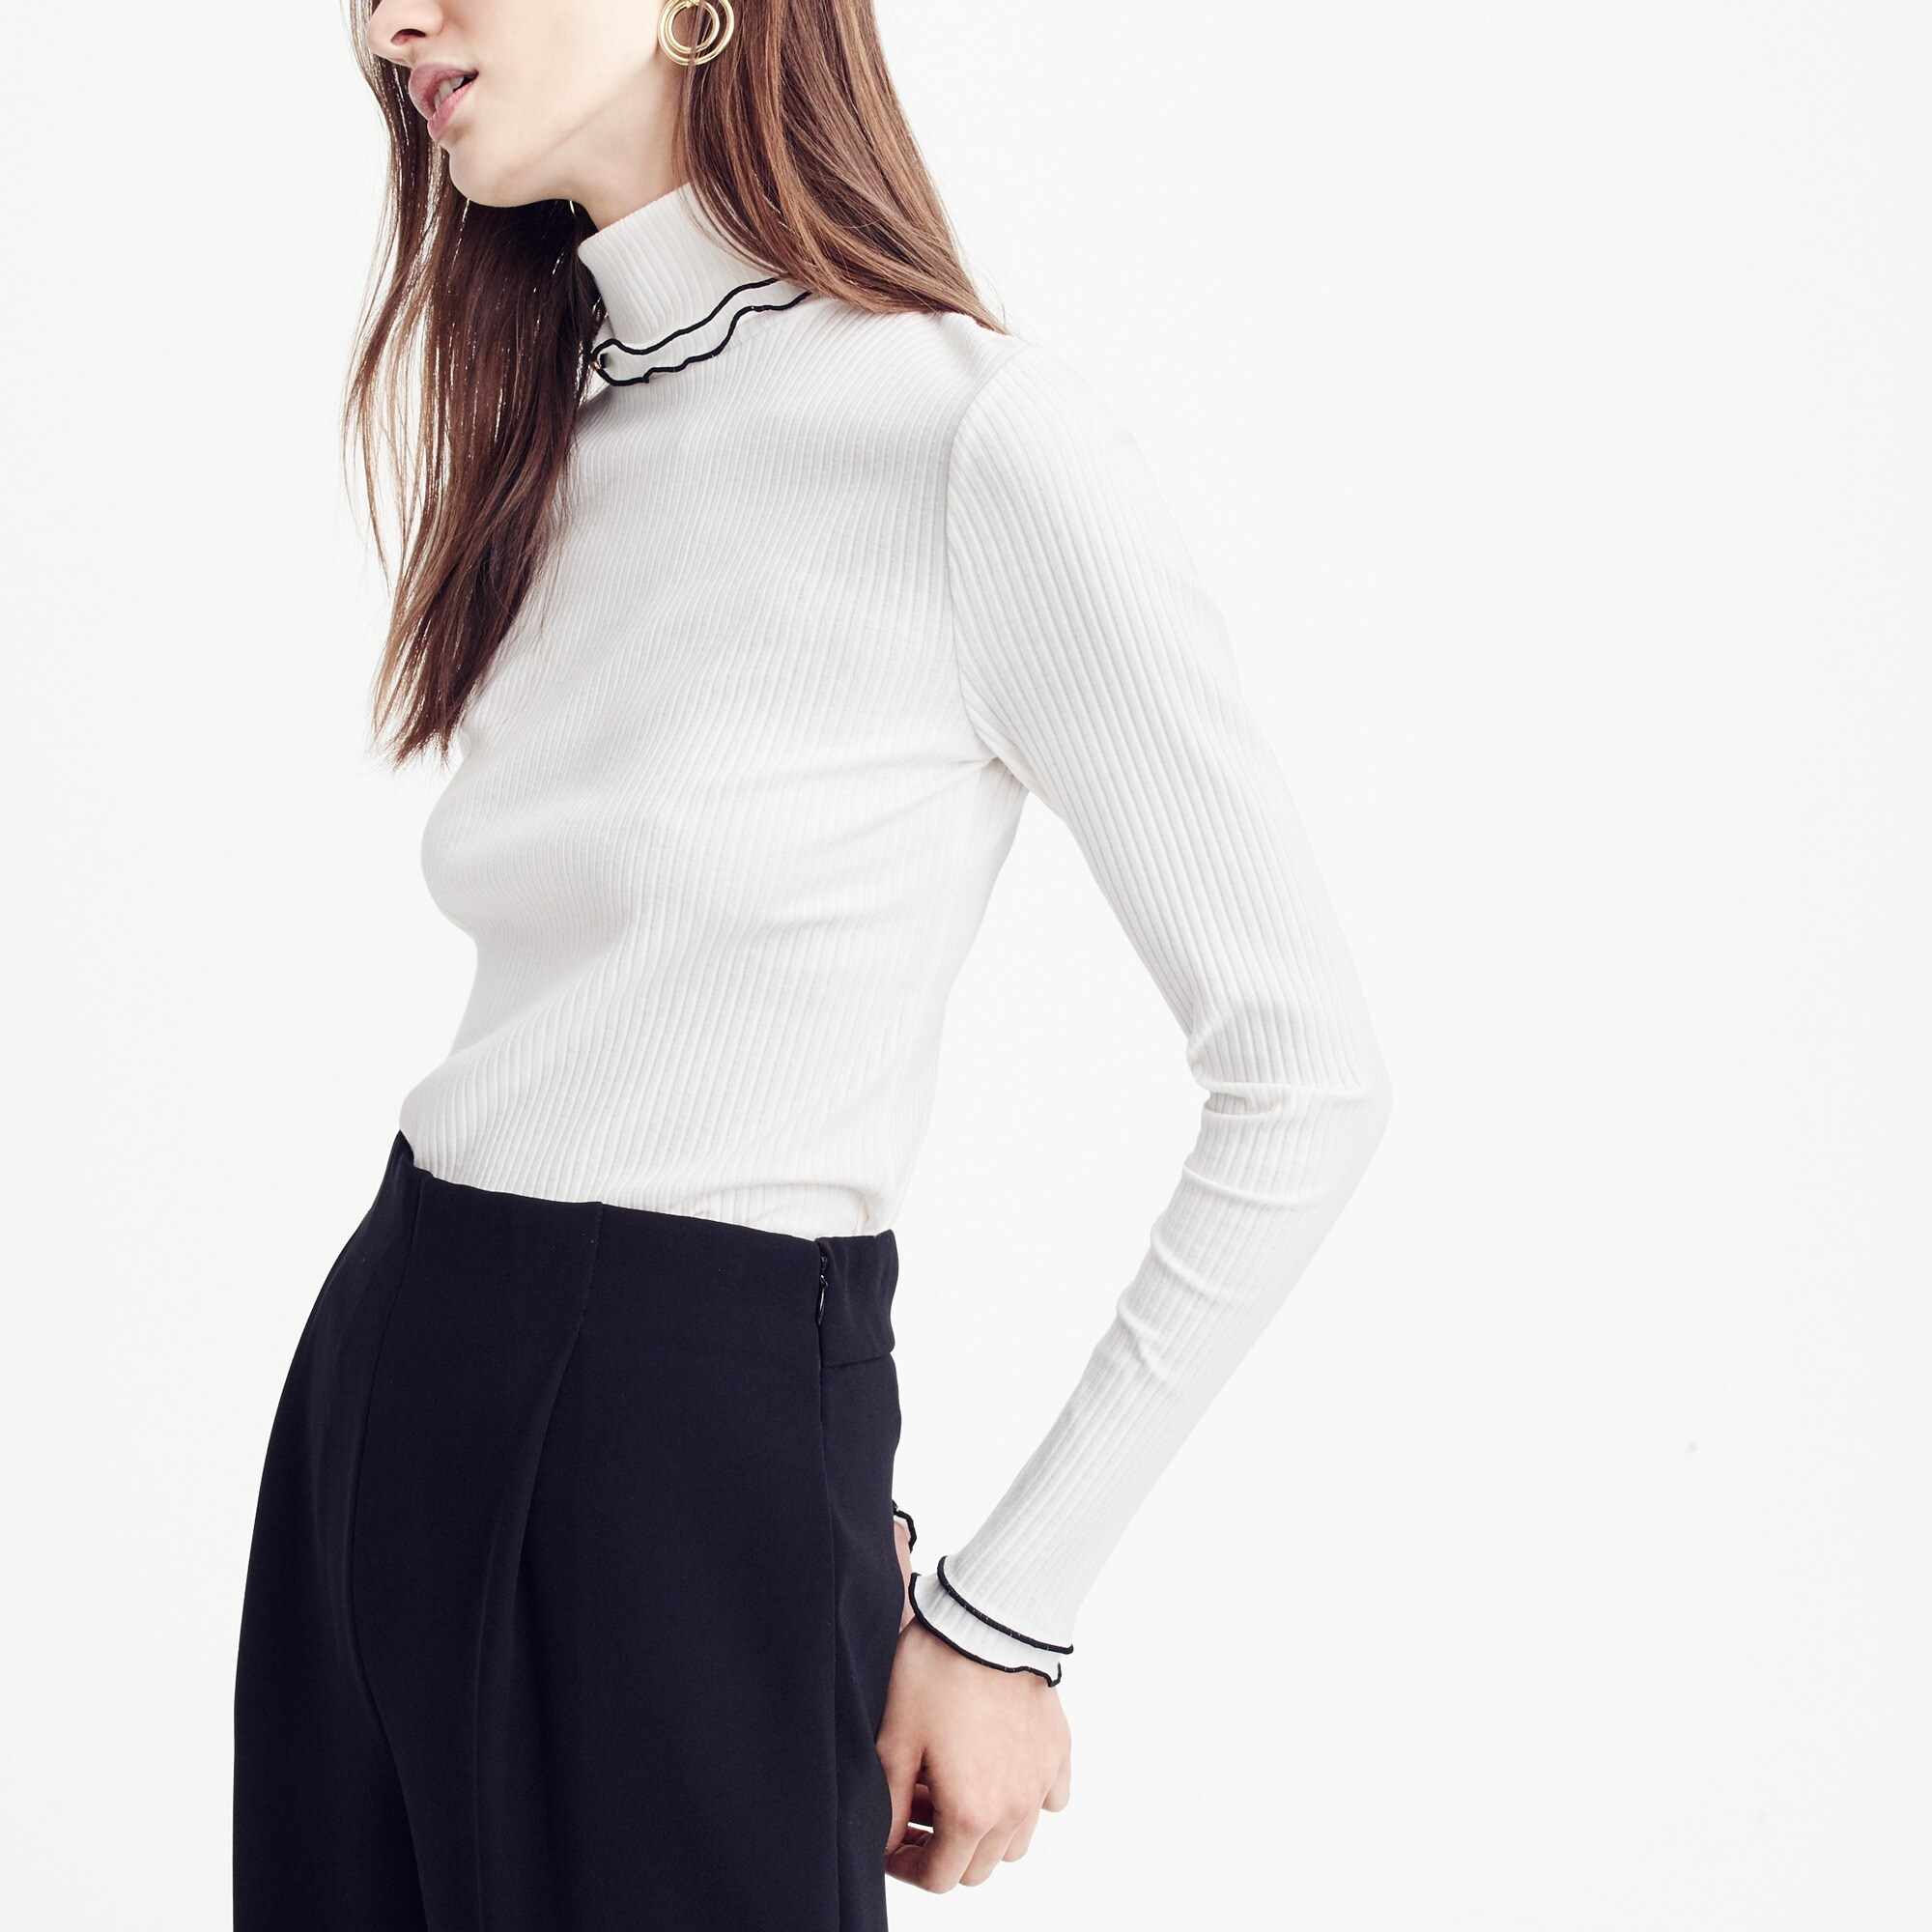 Contrast ribbed turtleneck